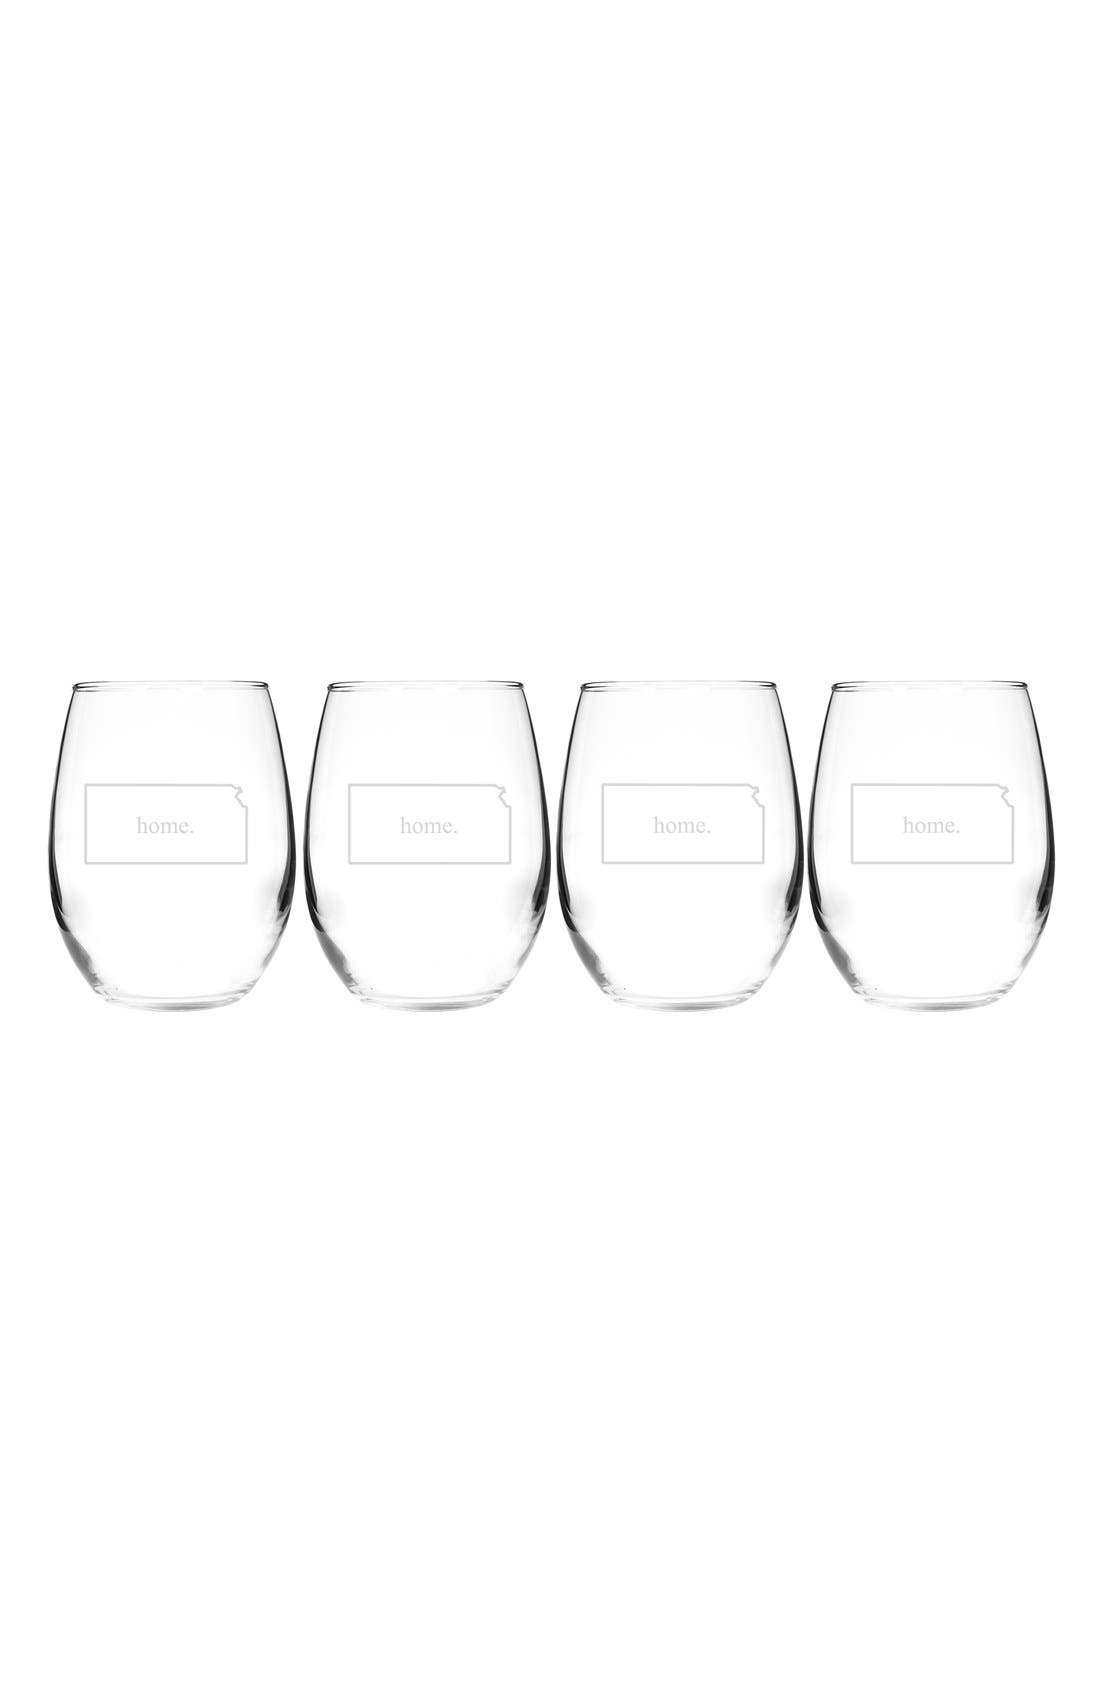 Home State Set of 4 Stemless Wine Glasses,                             Main thumbnail 17, color,